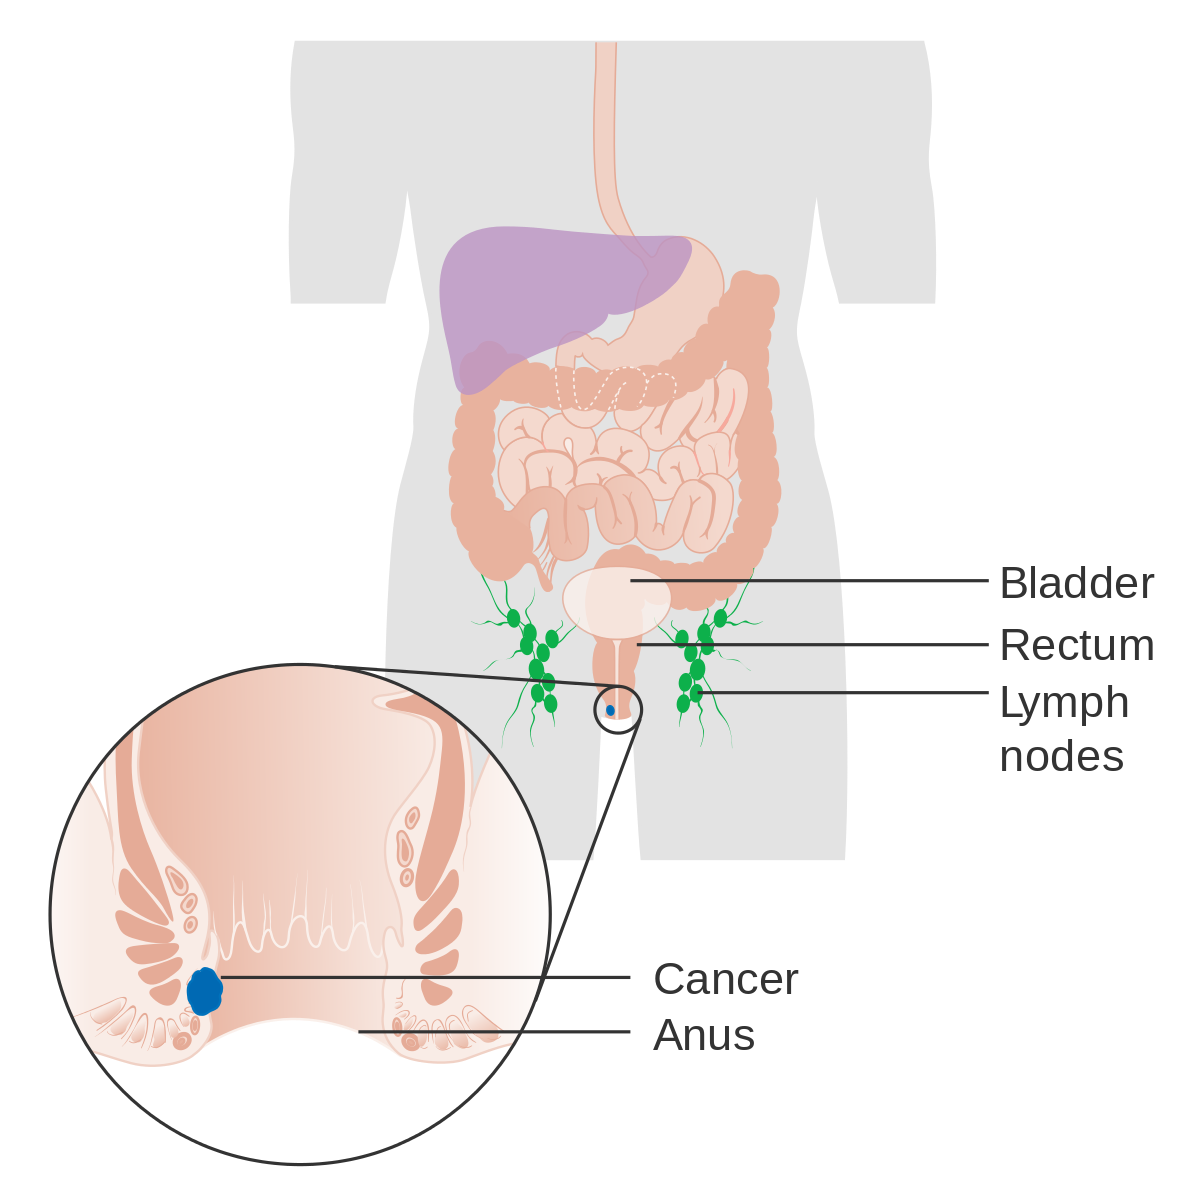 causes of rectal cancer hpv